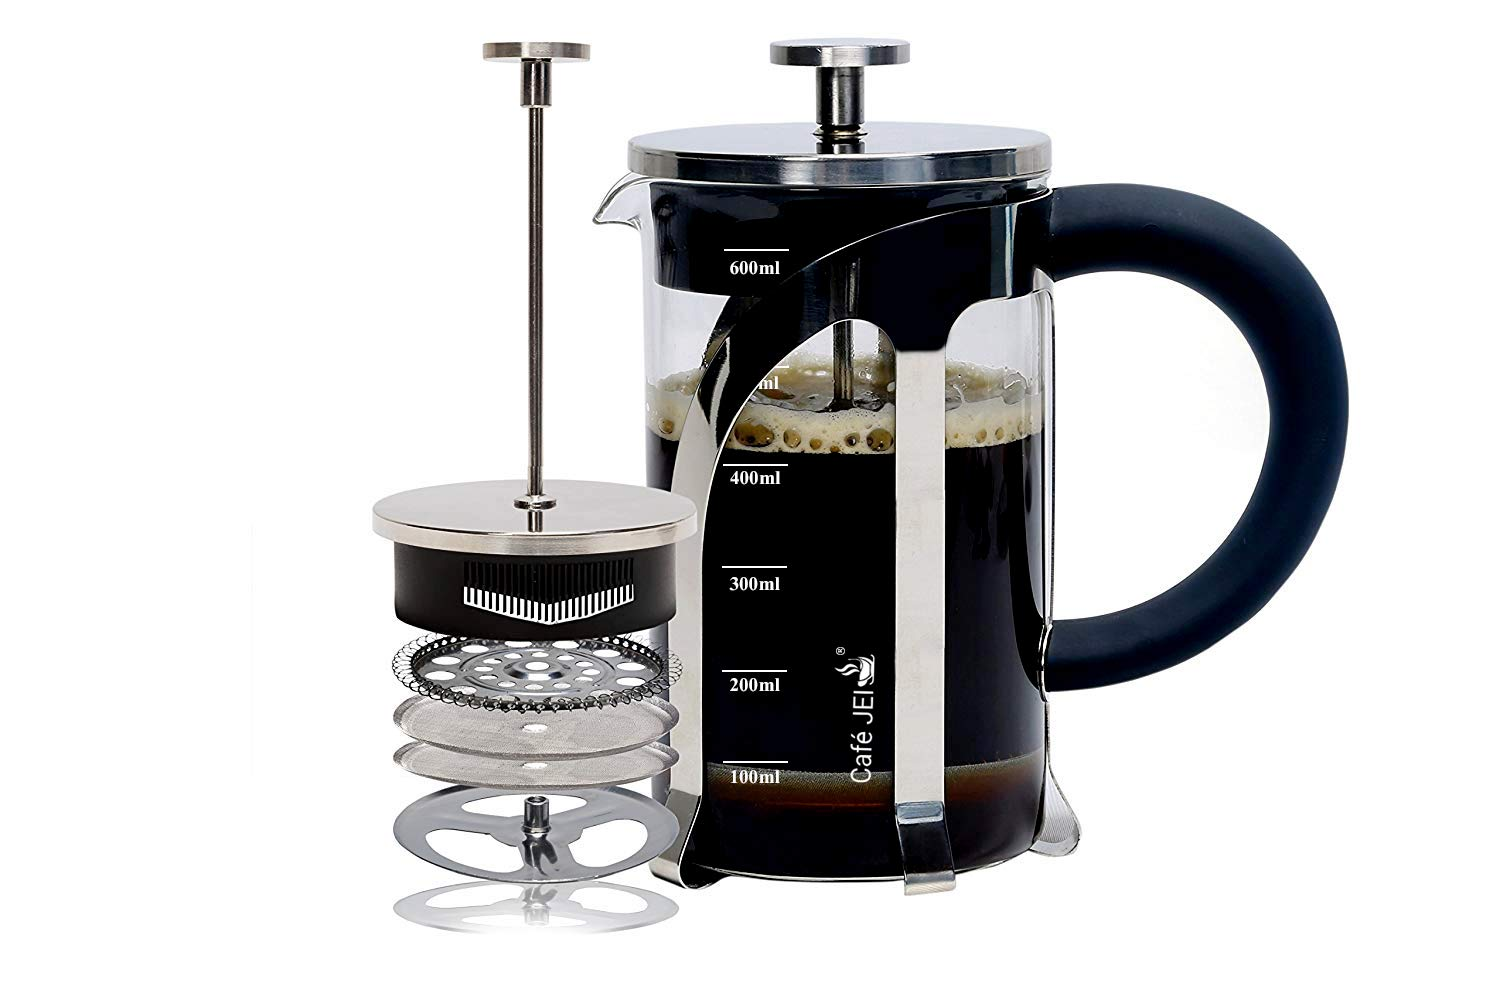 Cafe JEI French Press Coffee and Tea Maker 600ml with 4 Level Filtration System, Heat Resistant Borosilicate Glass, (Silver, 600ml)